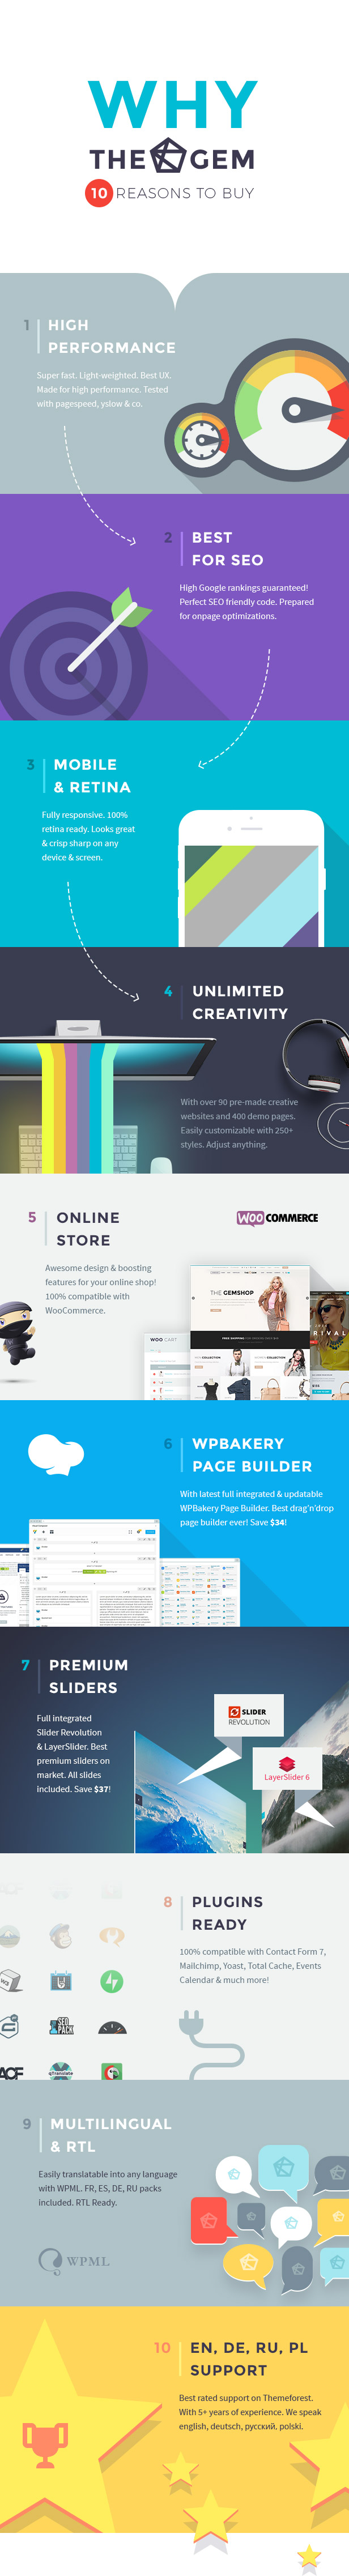 TheGem - Creative Multi-Purpose High-Performance WordPress Theme - 3